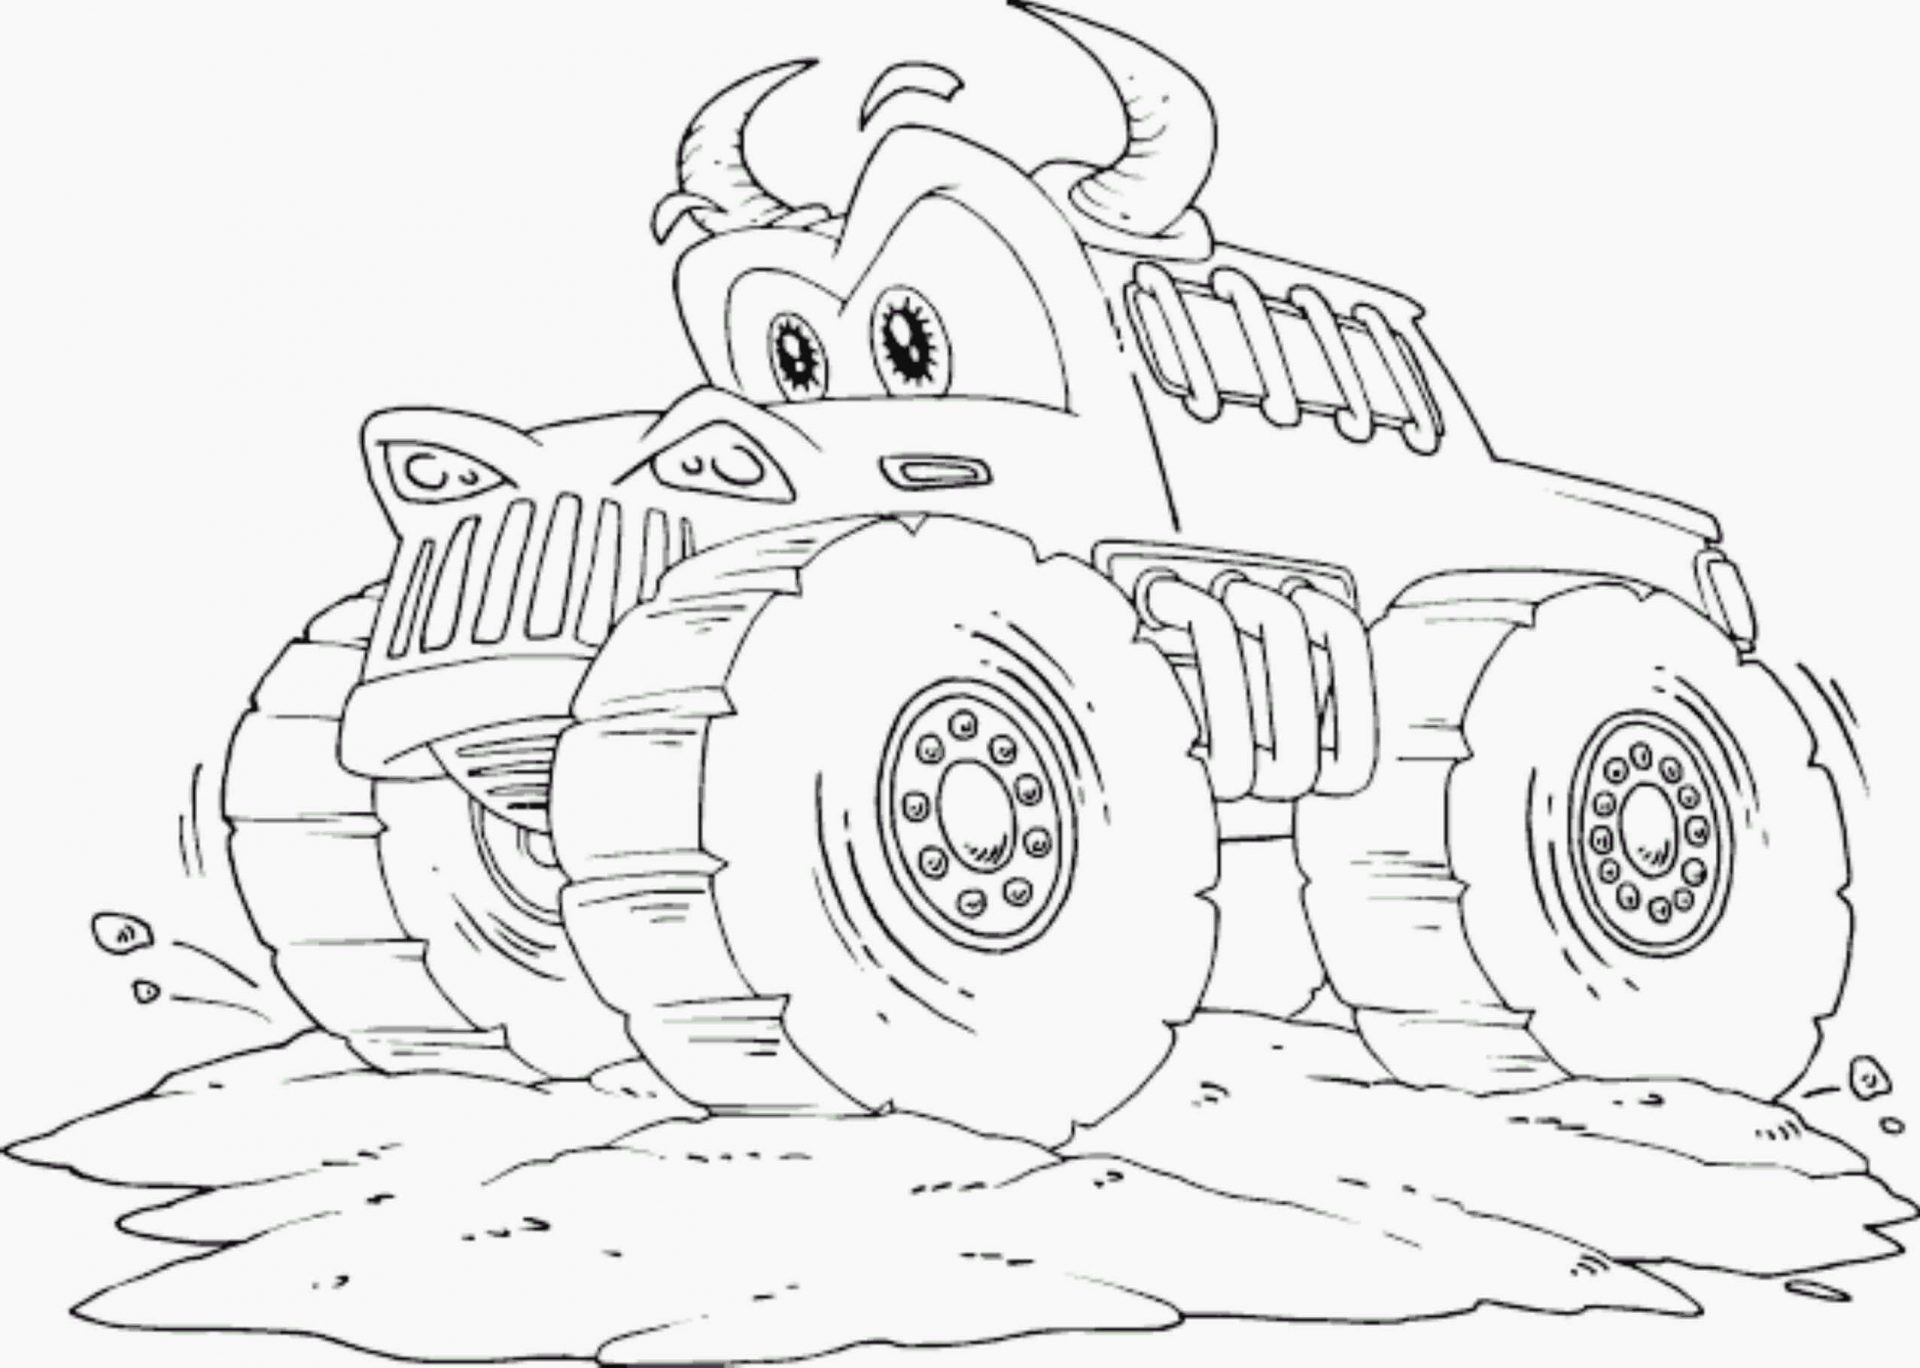 Cars Coloring Pages Download and Print for Mack the Truck Disney Download Of Car Coloring Pages Disney Cars the Movie to Print Grig3 Download